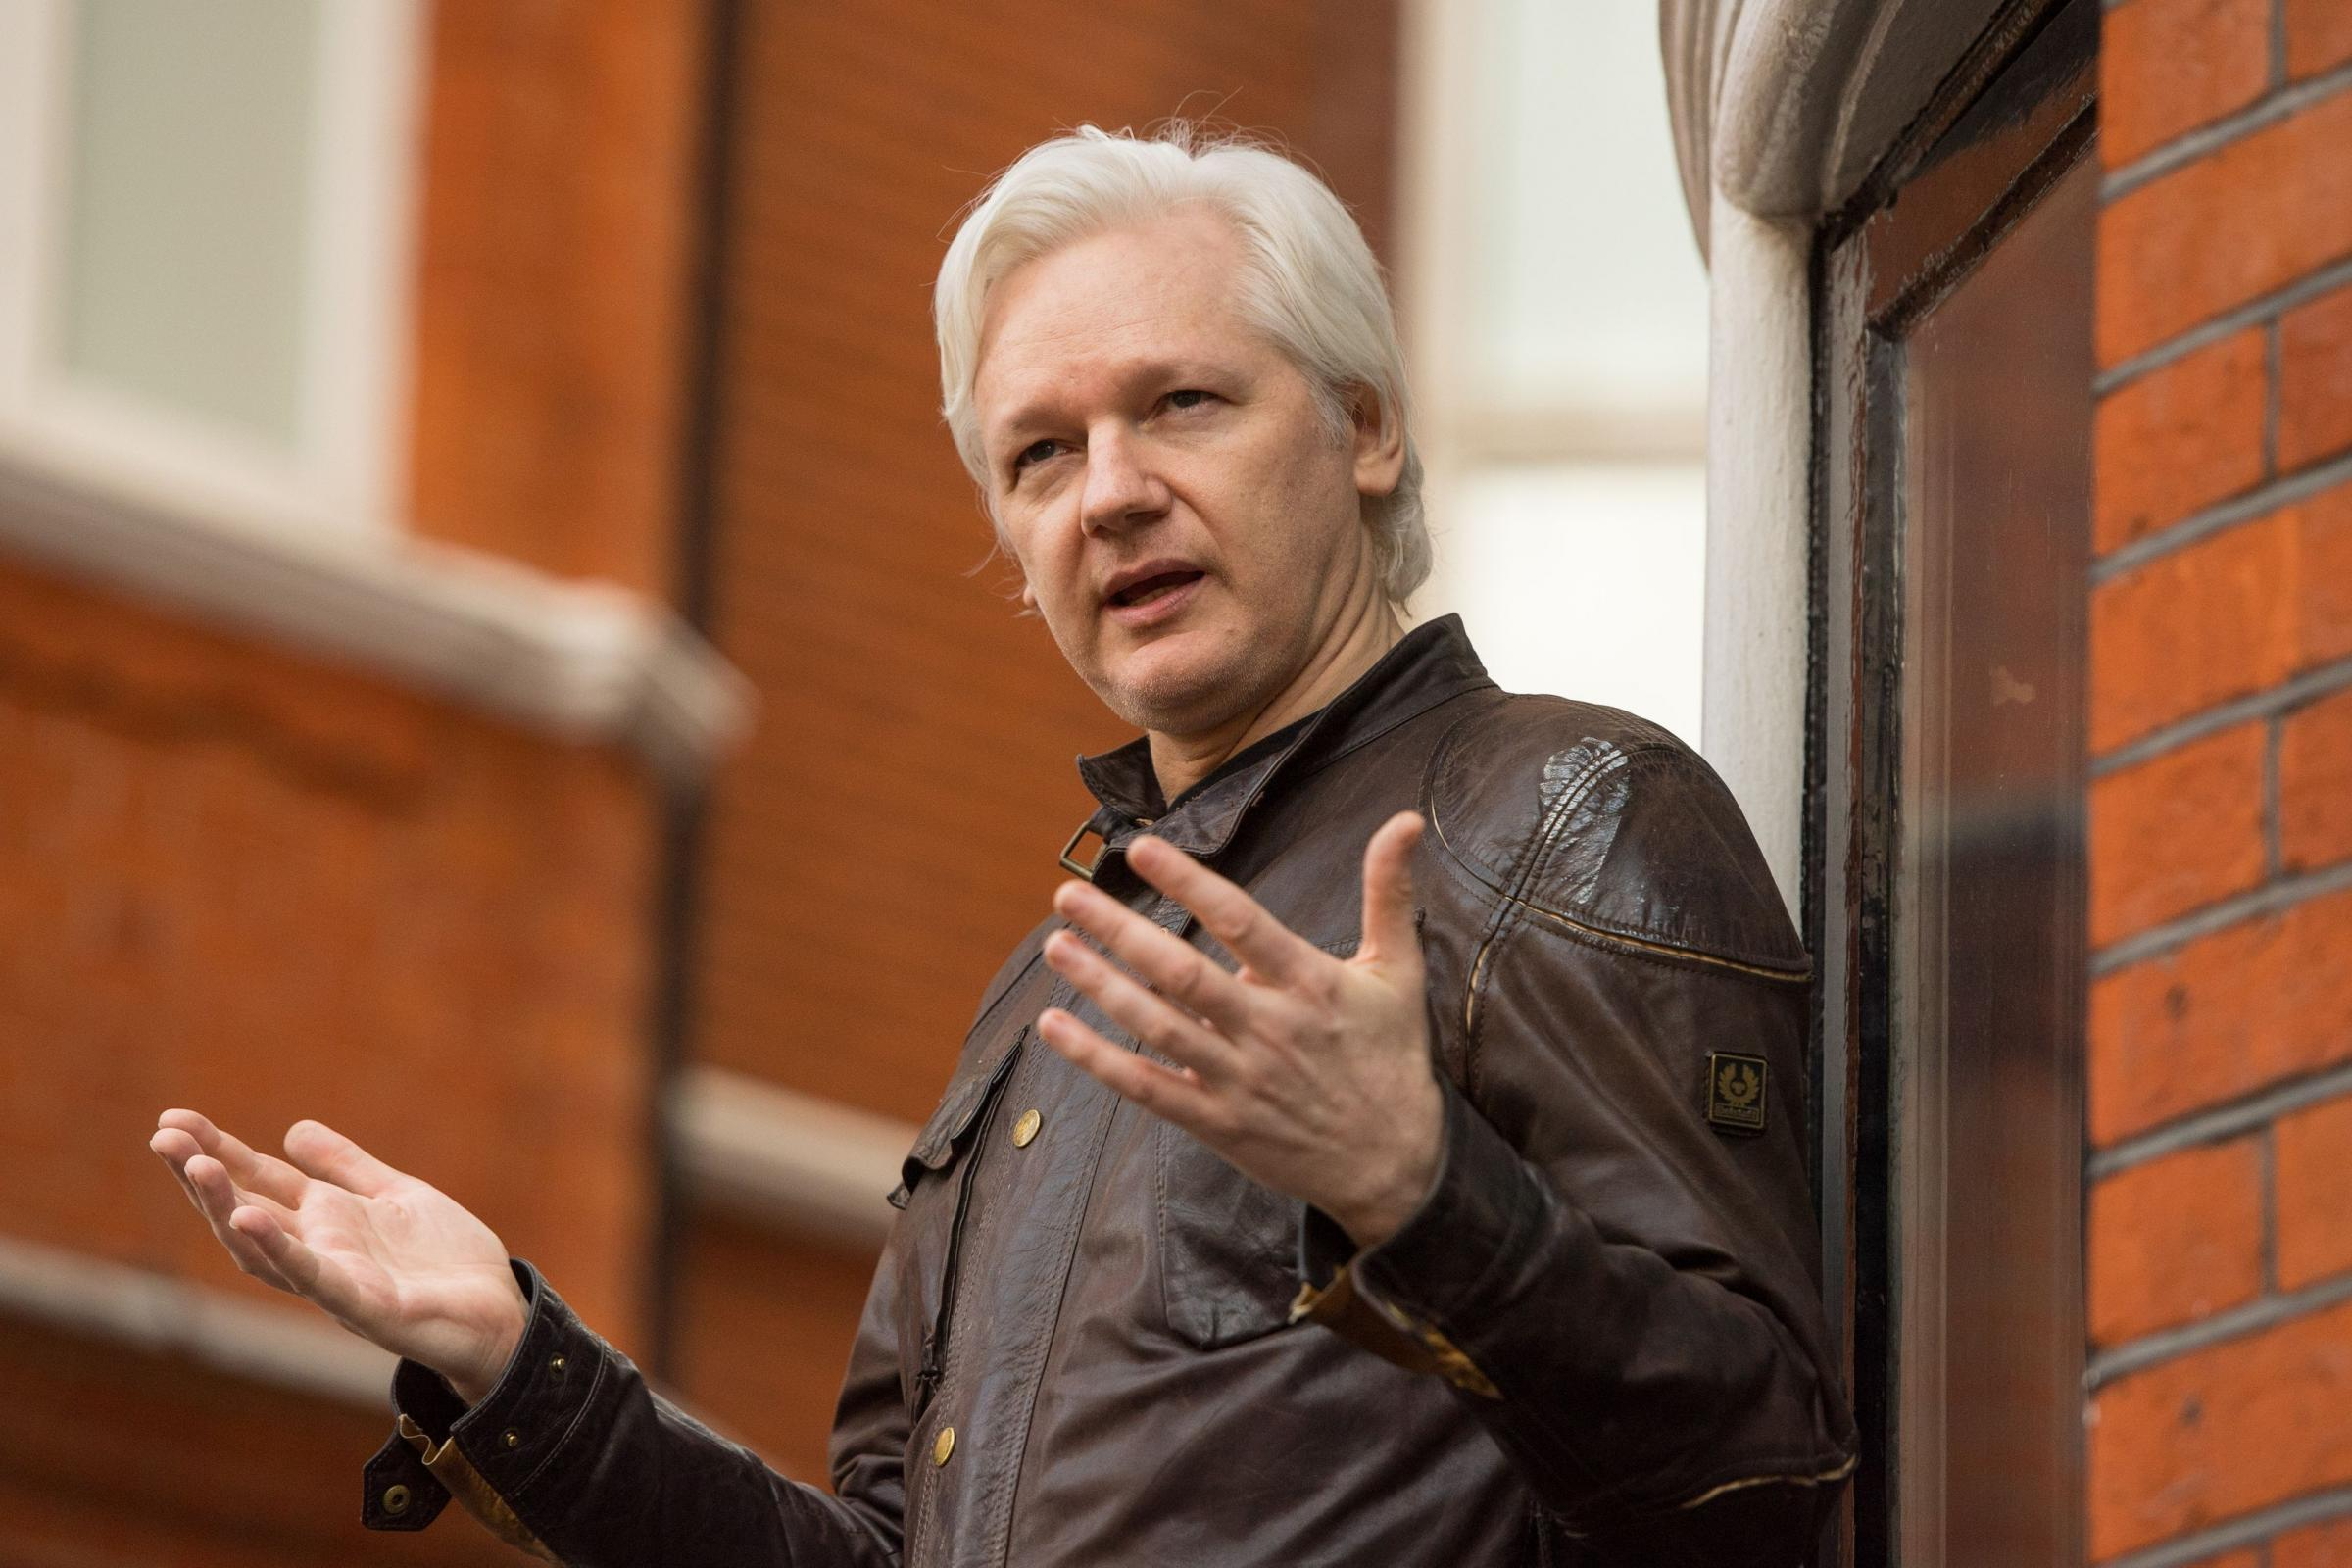 Julian Assange has been living inside the Ecuadorian Embassy in London for more than five years (Dominic Lipinski/PA)